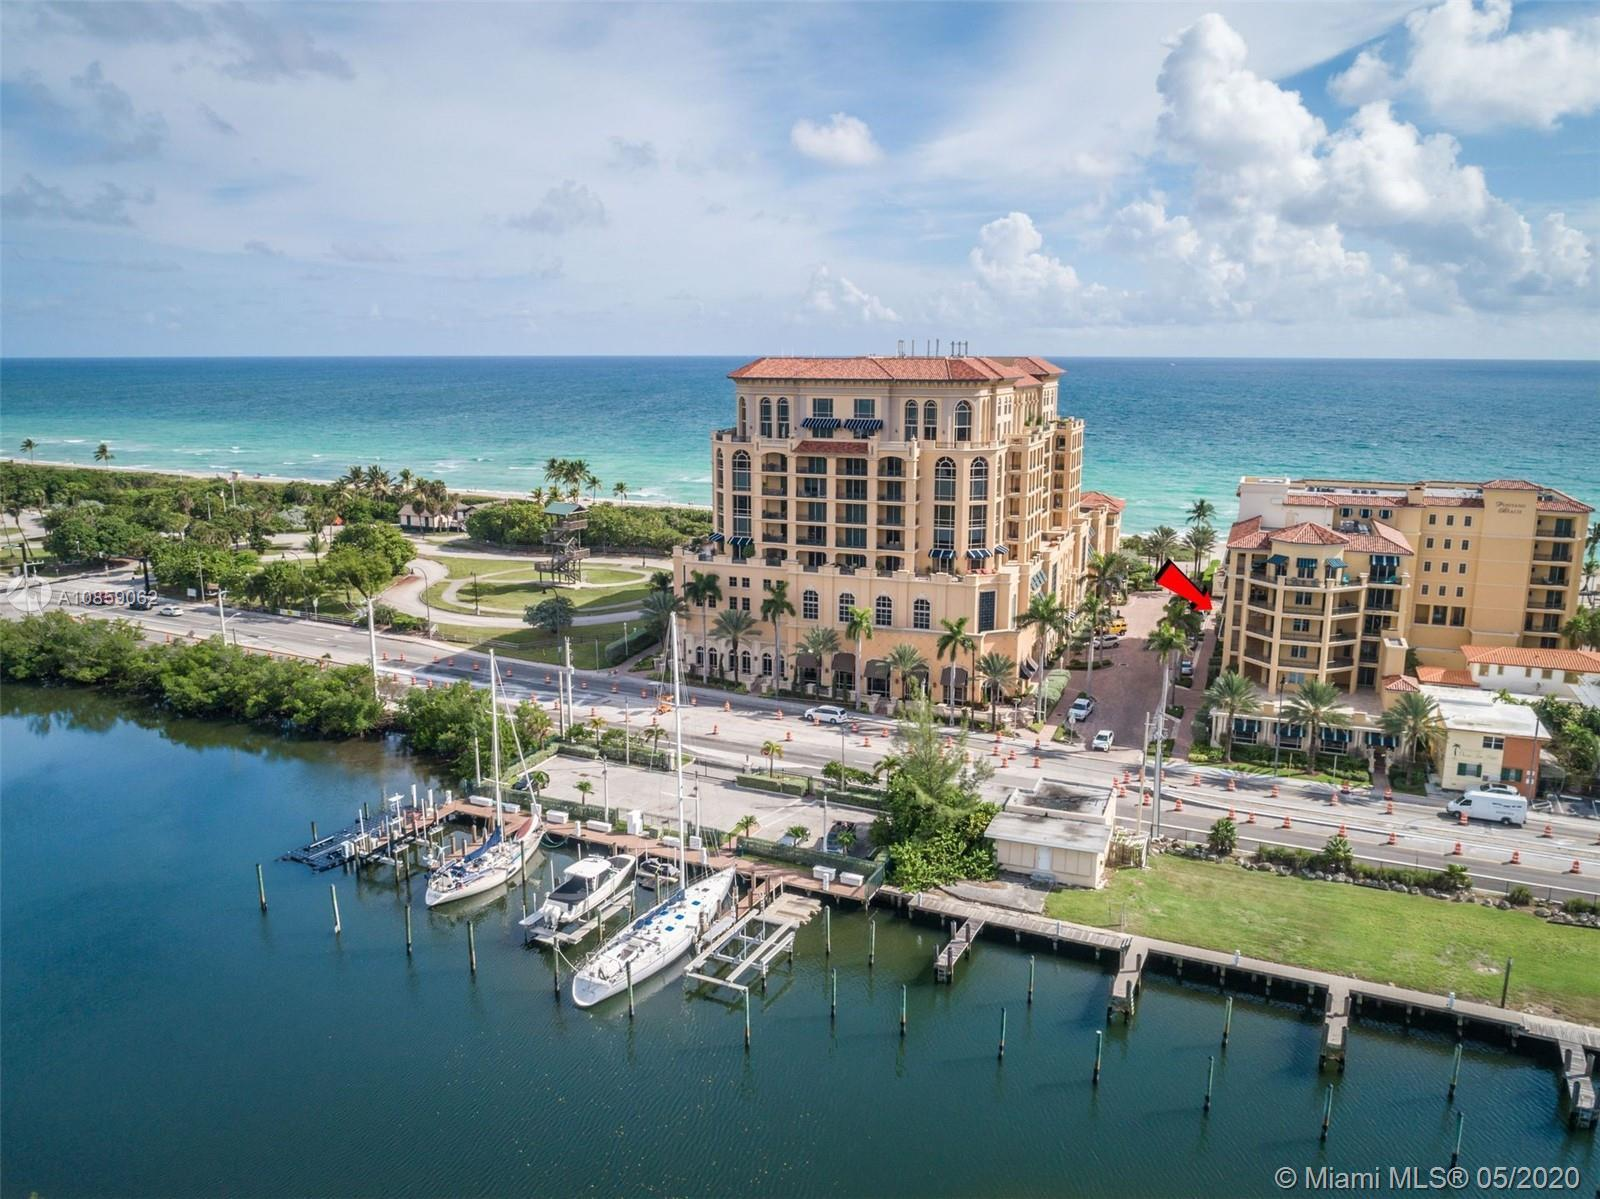 Enjoy the Positano lifestyle in this 3,300sf 3 bed/2.5 bath condo. Open floor with all the top finis